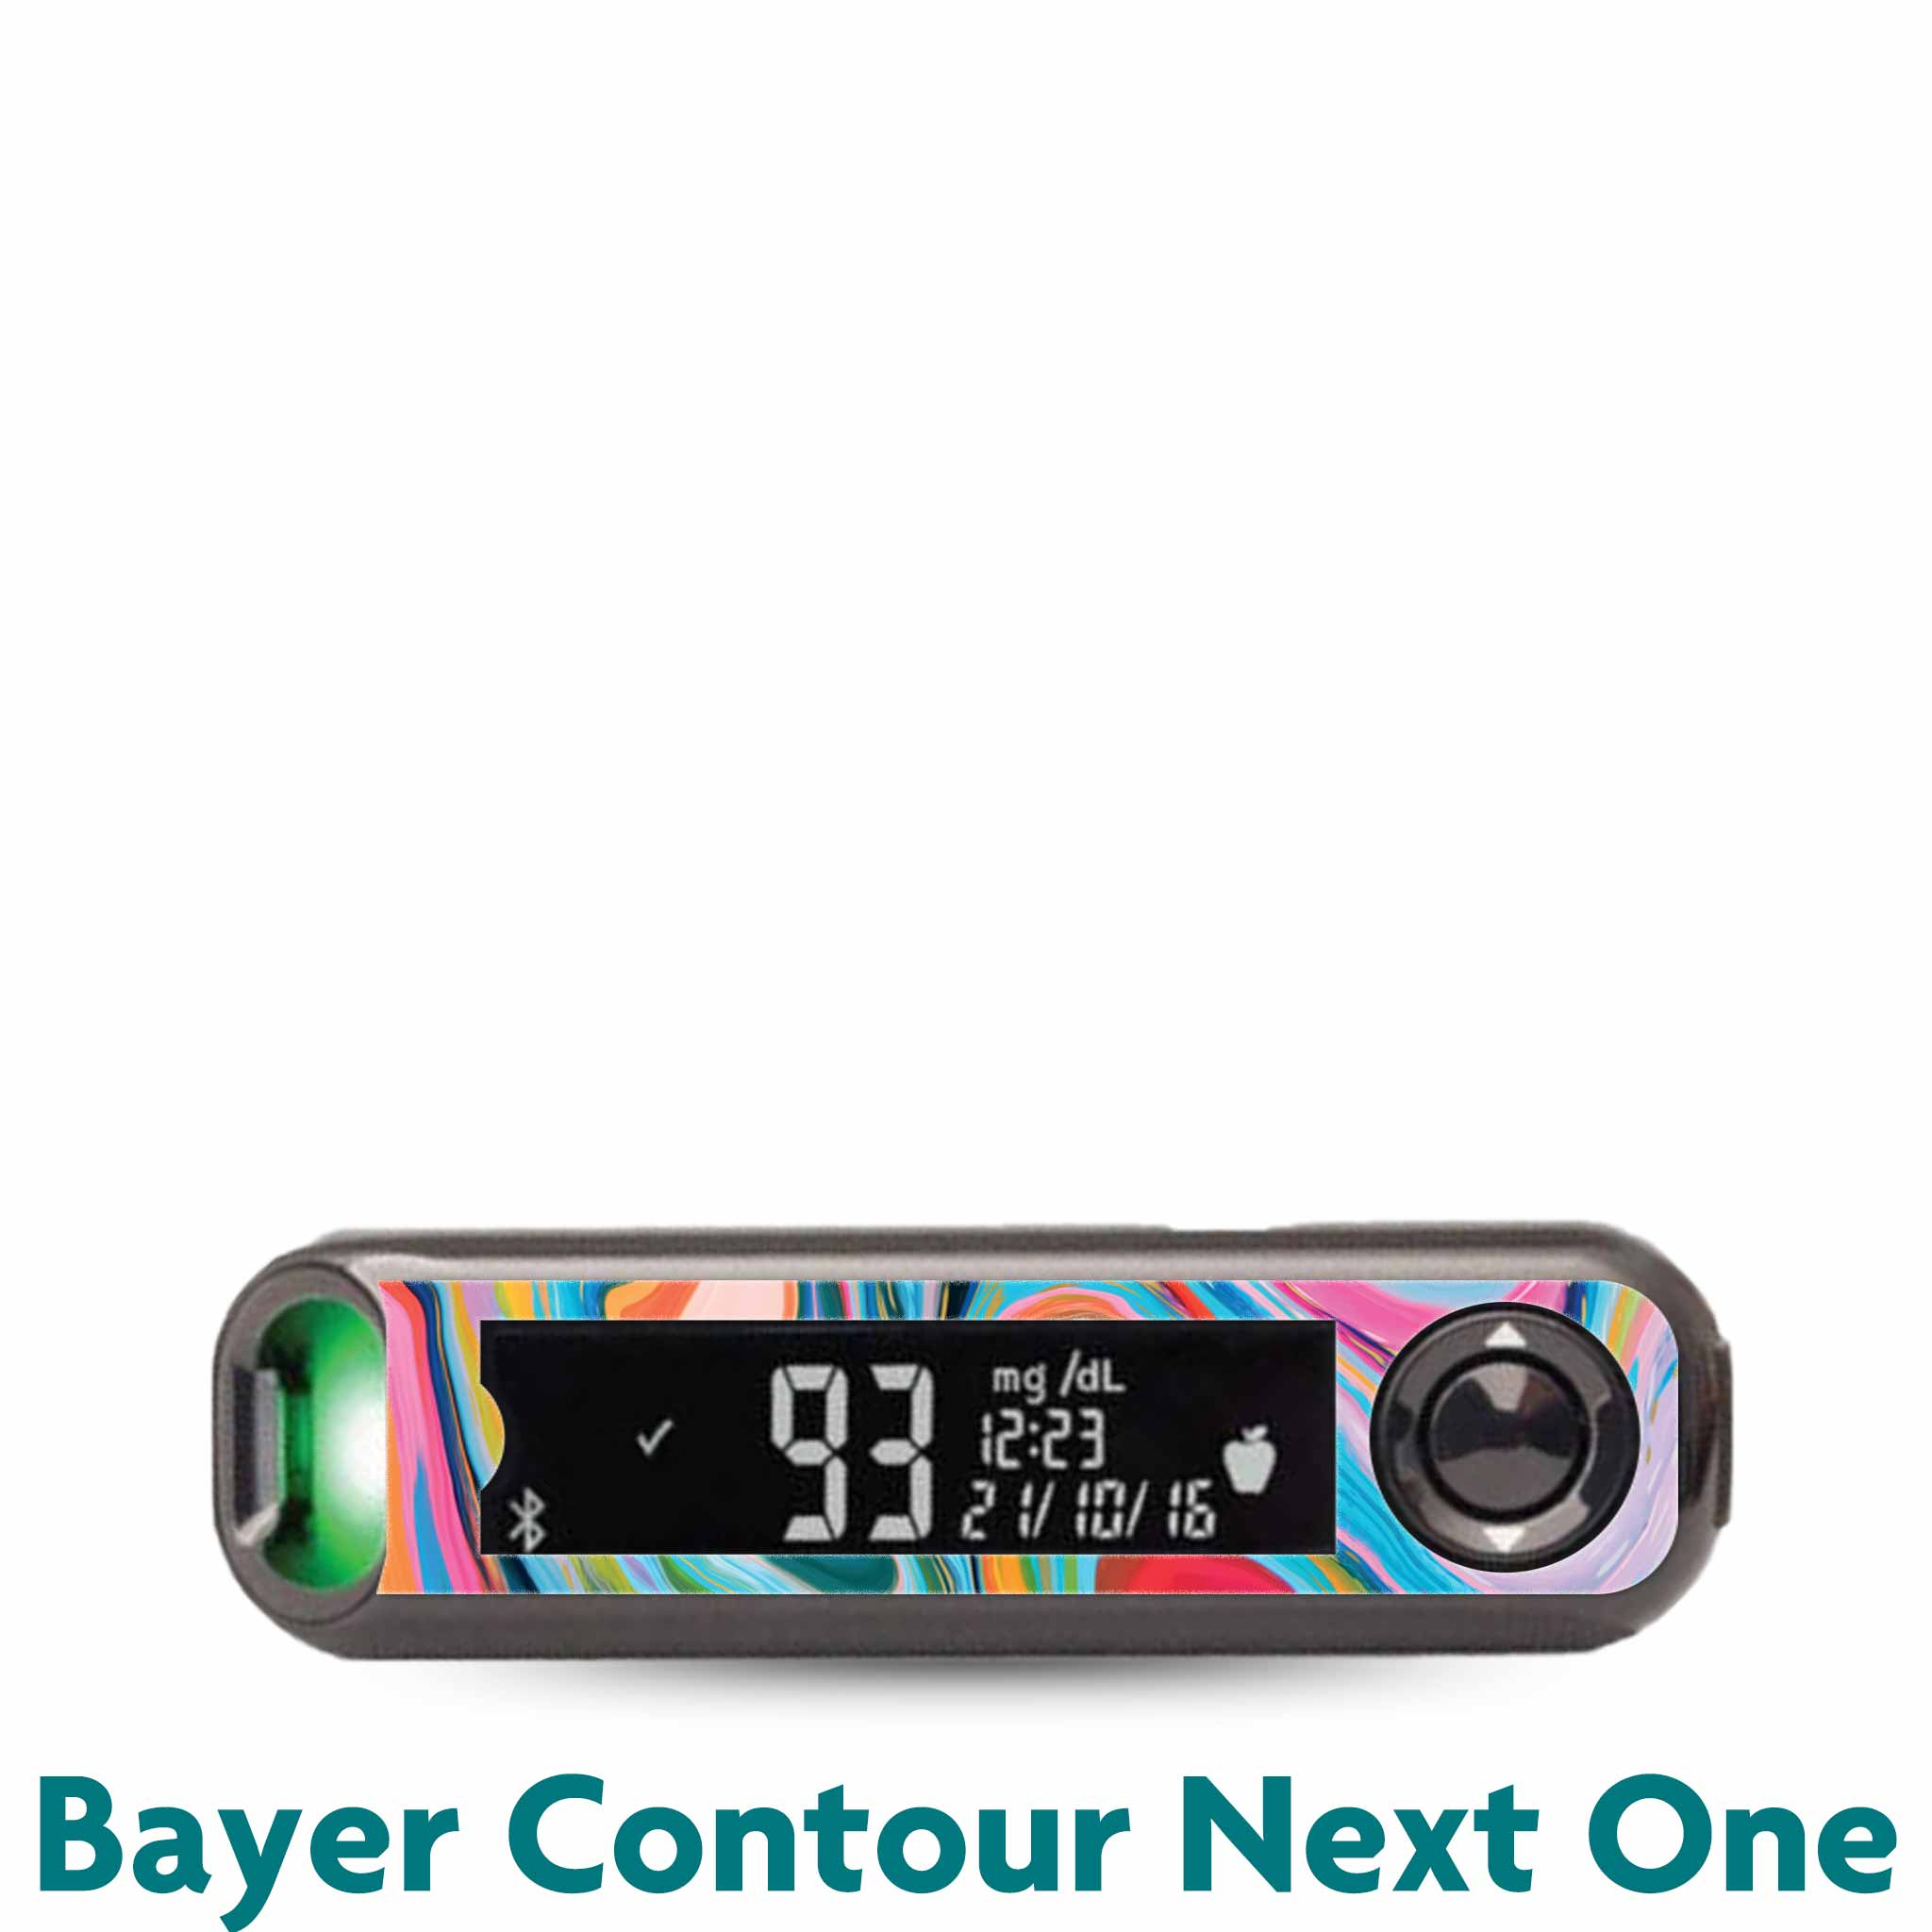 Bayer Contour Next One Meter Stickers